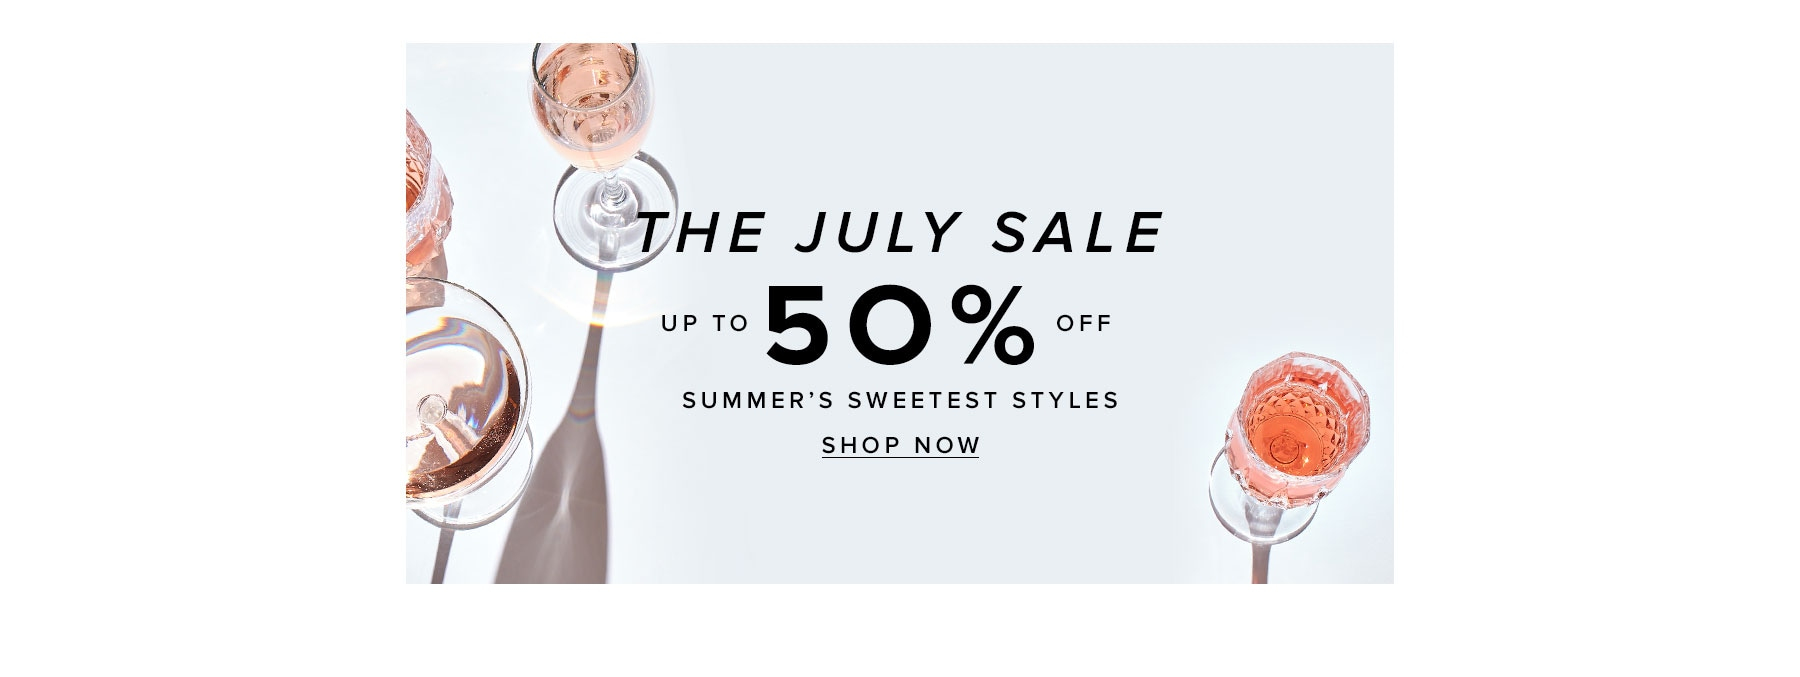 The July Sale. Up to 50% off summer's sweetest styles. Shop now.